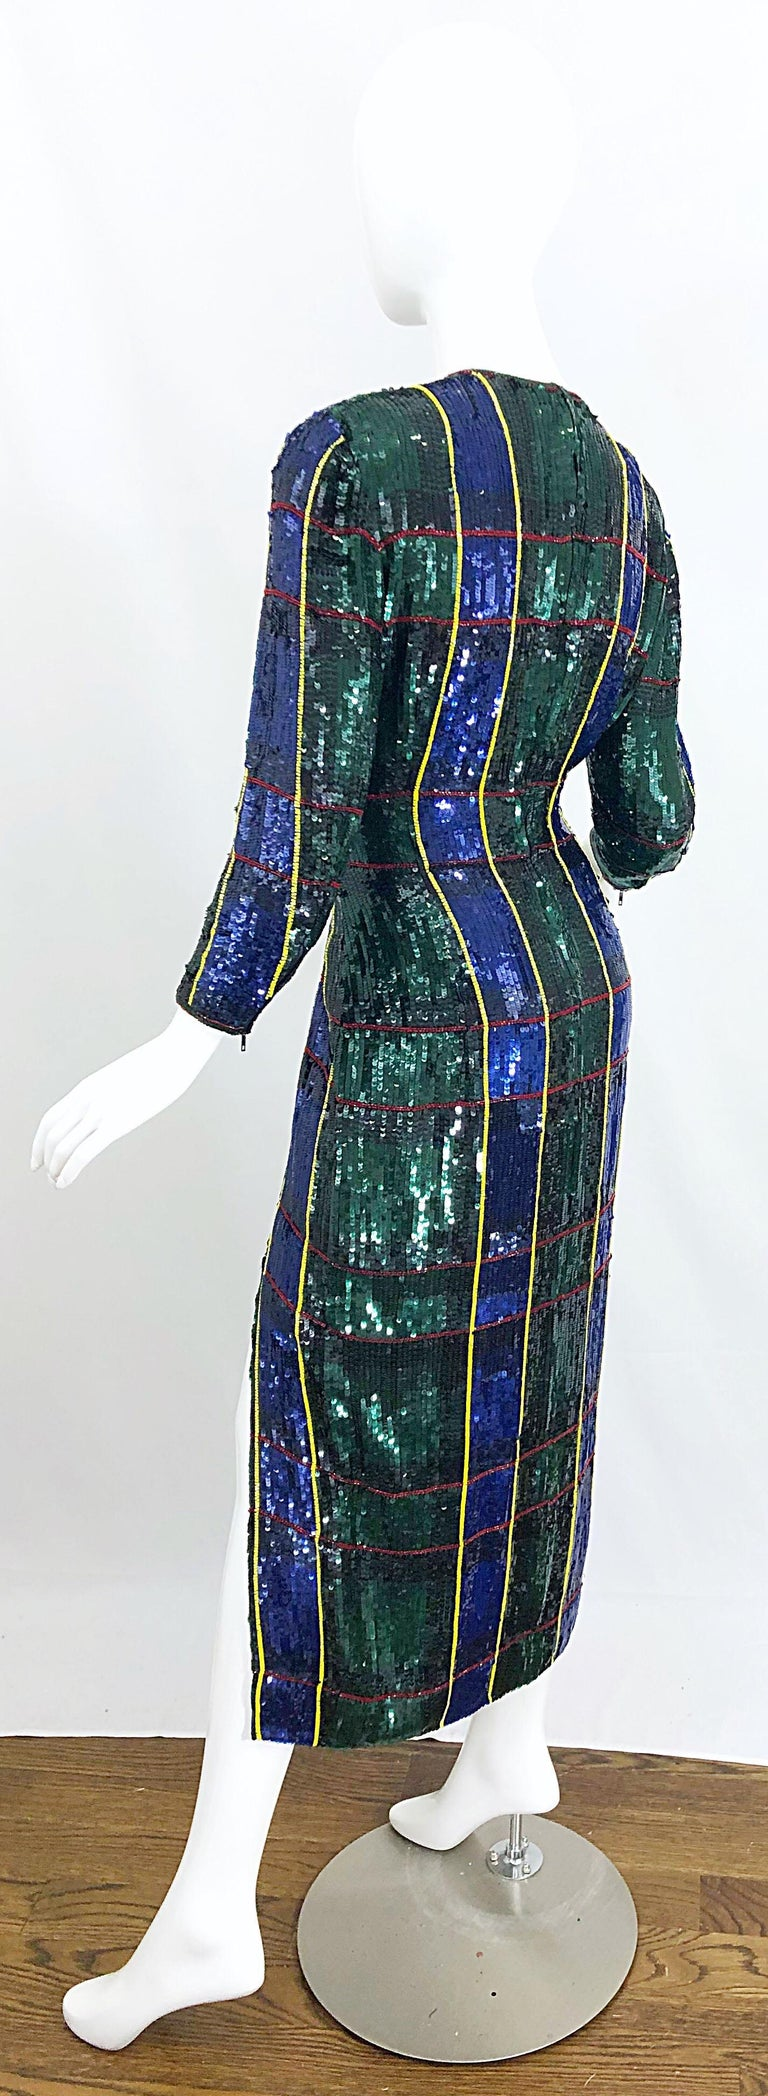 1990s Escada Couture Tartan Plaid Fully Sequined Silk Vintage 90s Evening Gown For Sale 8